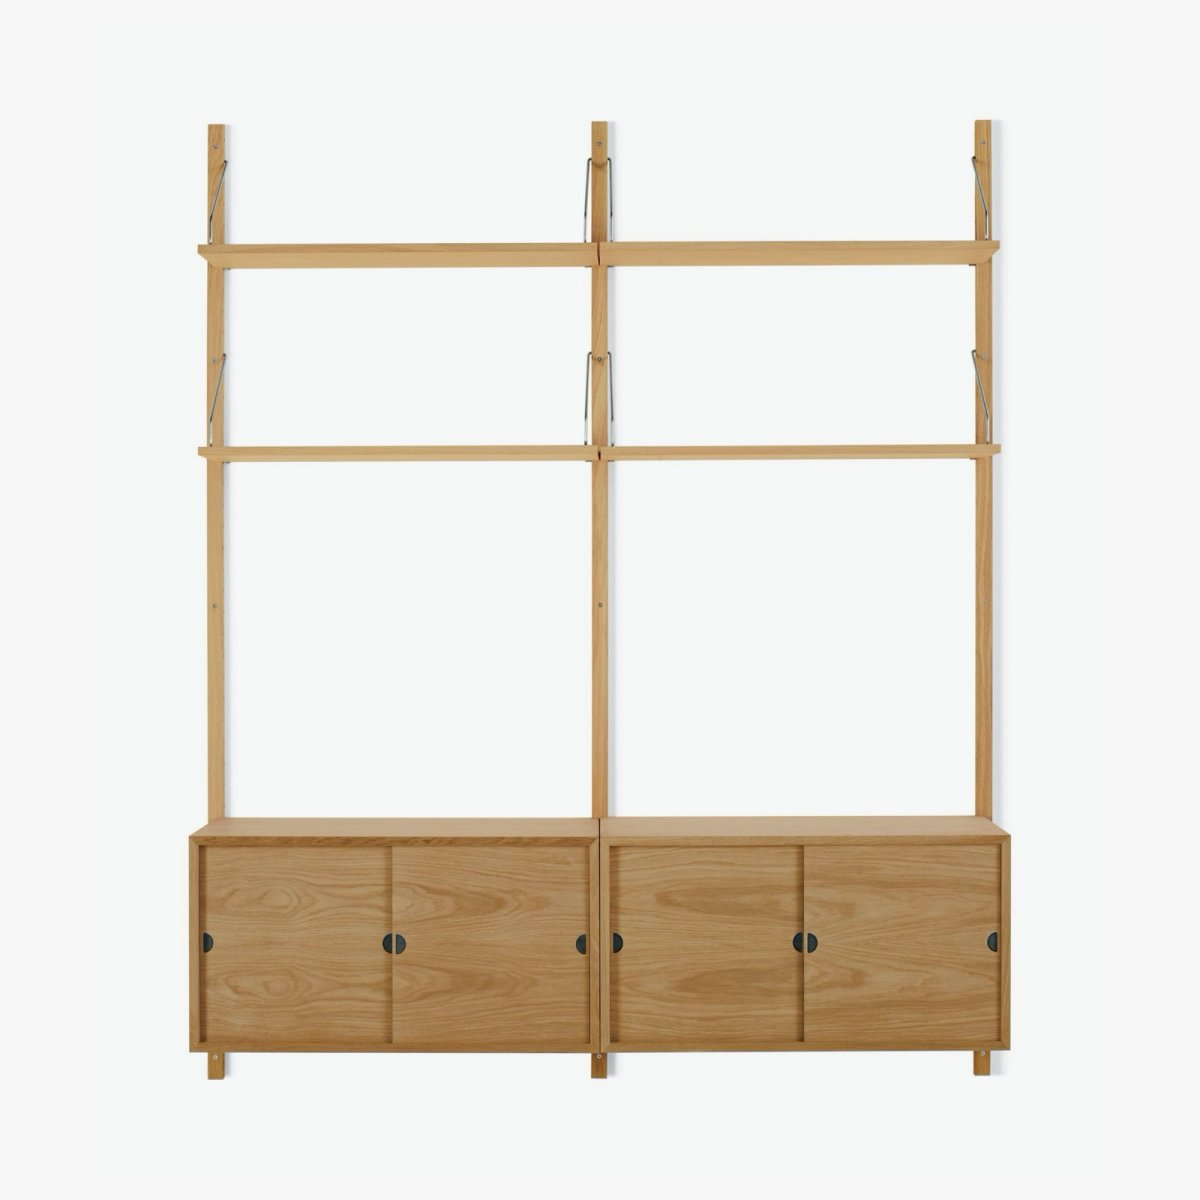 Royal System Shelving Unit B with Sliding Door Cabinets, oak.